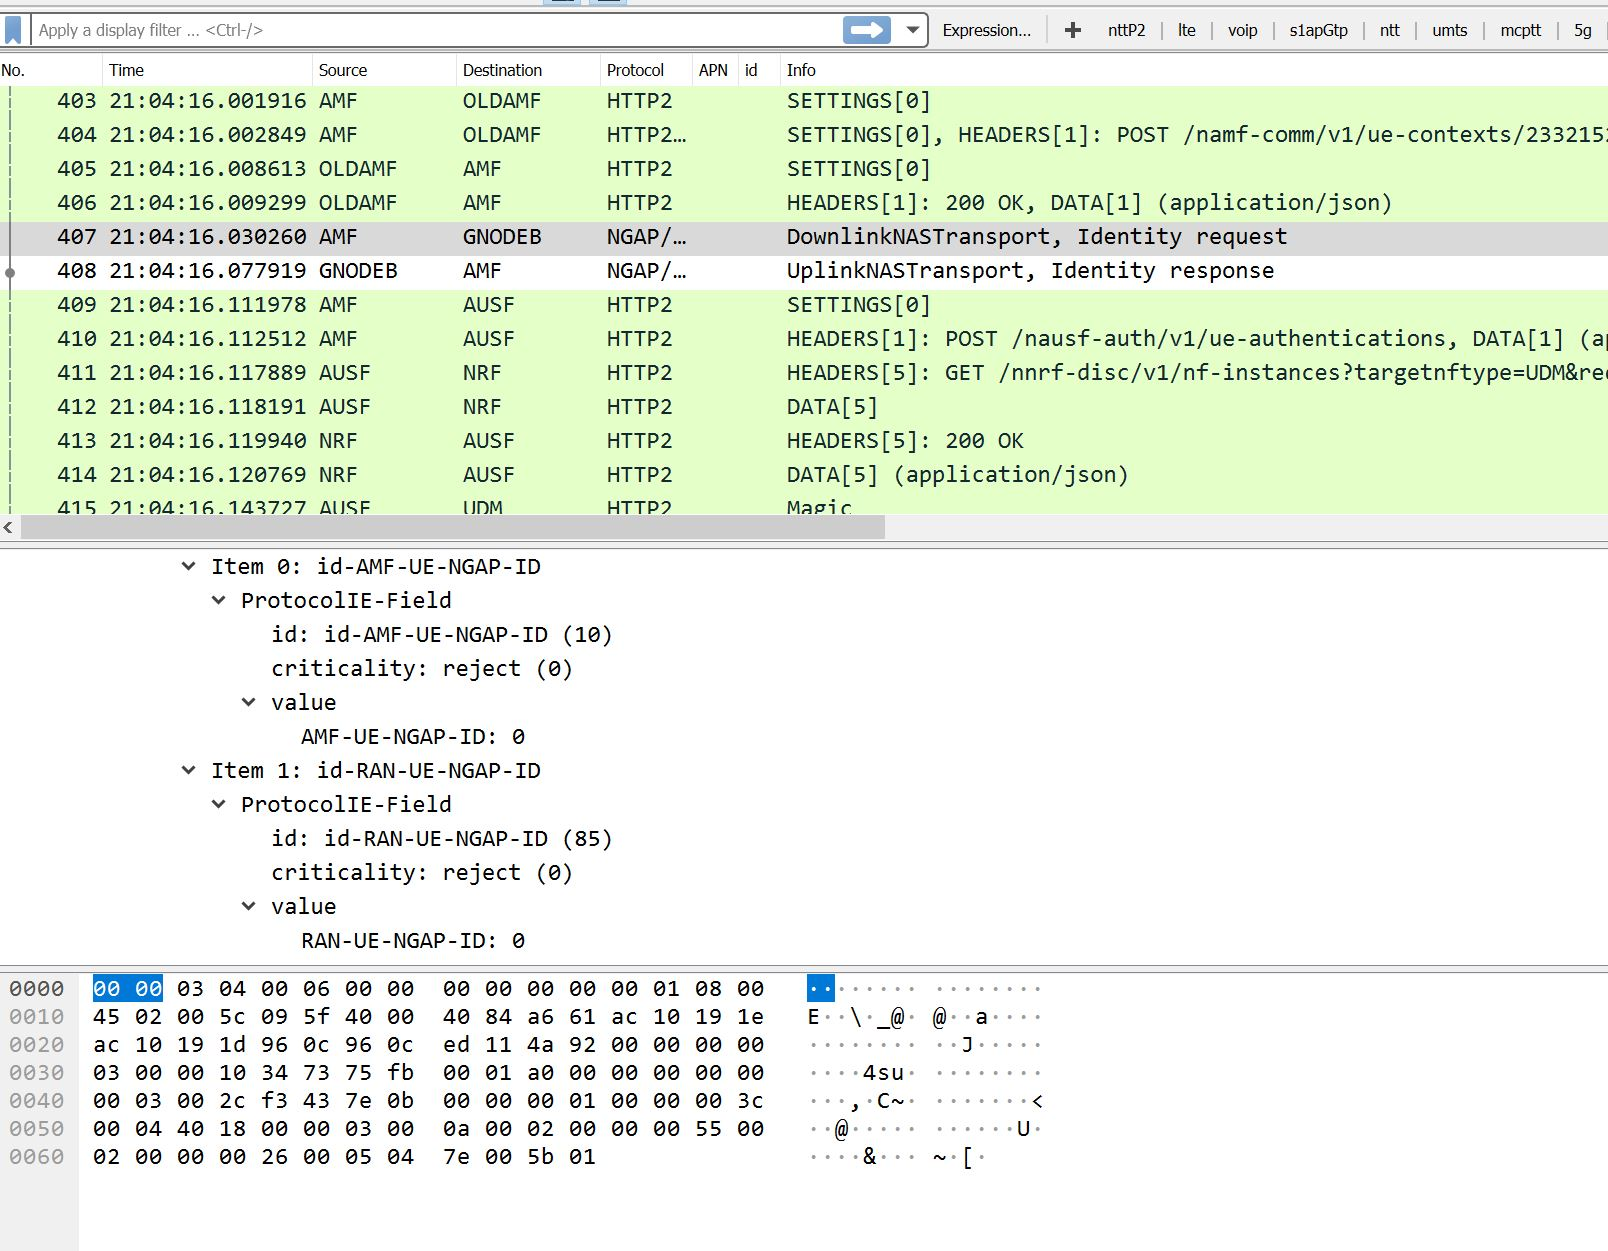 Emulate 5G core (5GC) SA network nodes and generate